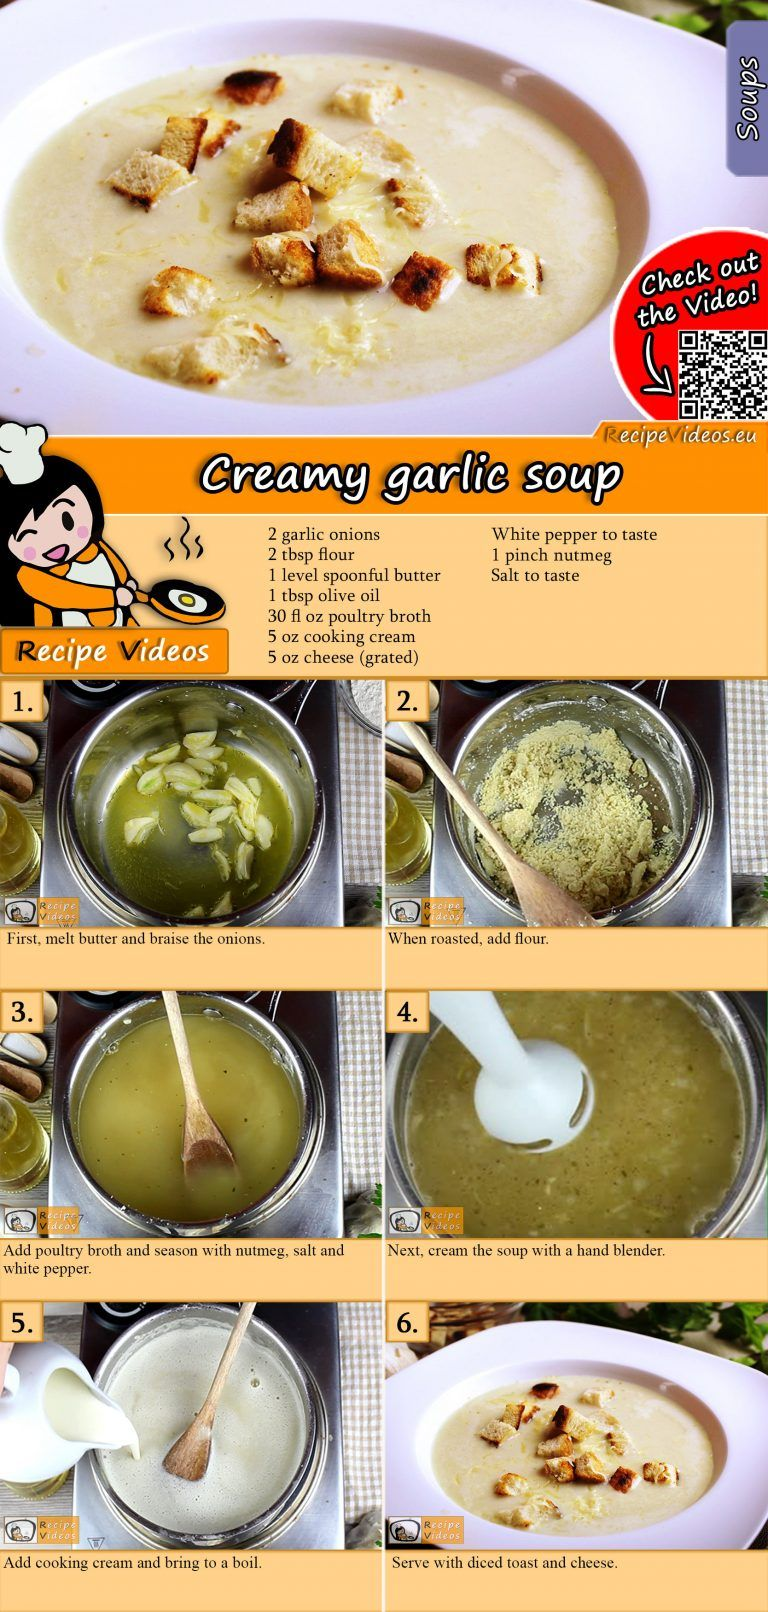 The Creamy garlic soup is a recipe you should try not only because it has healing and immune system